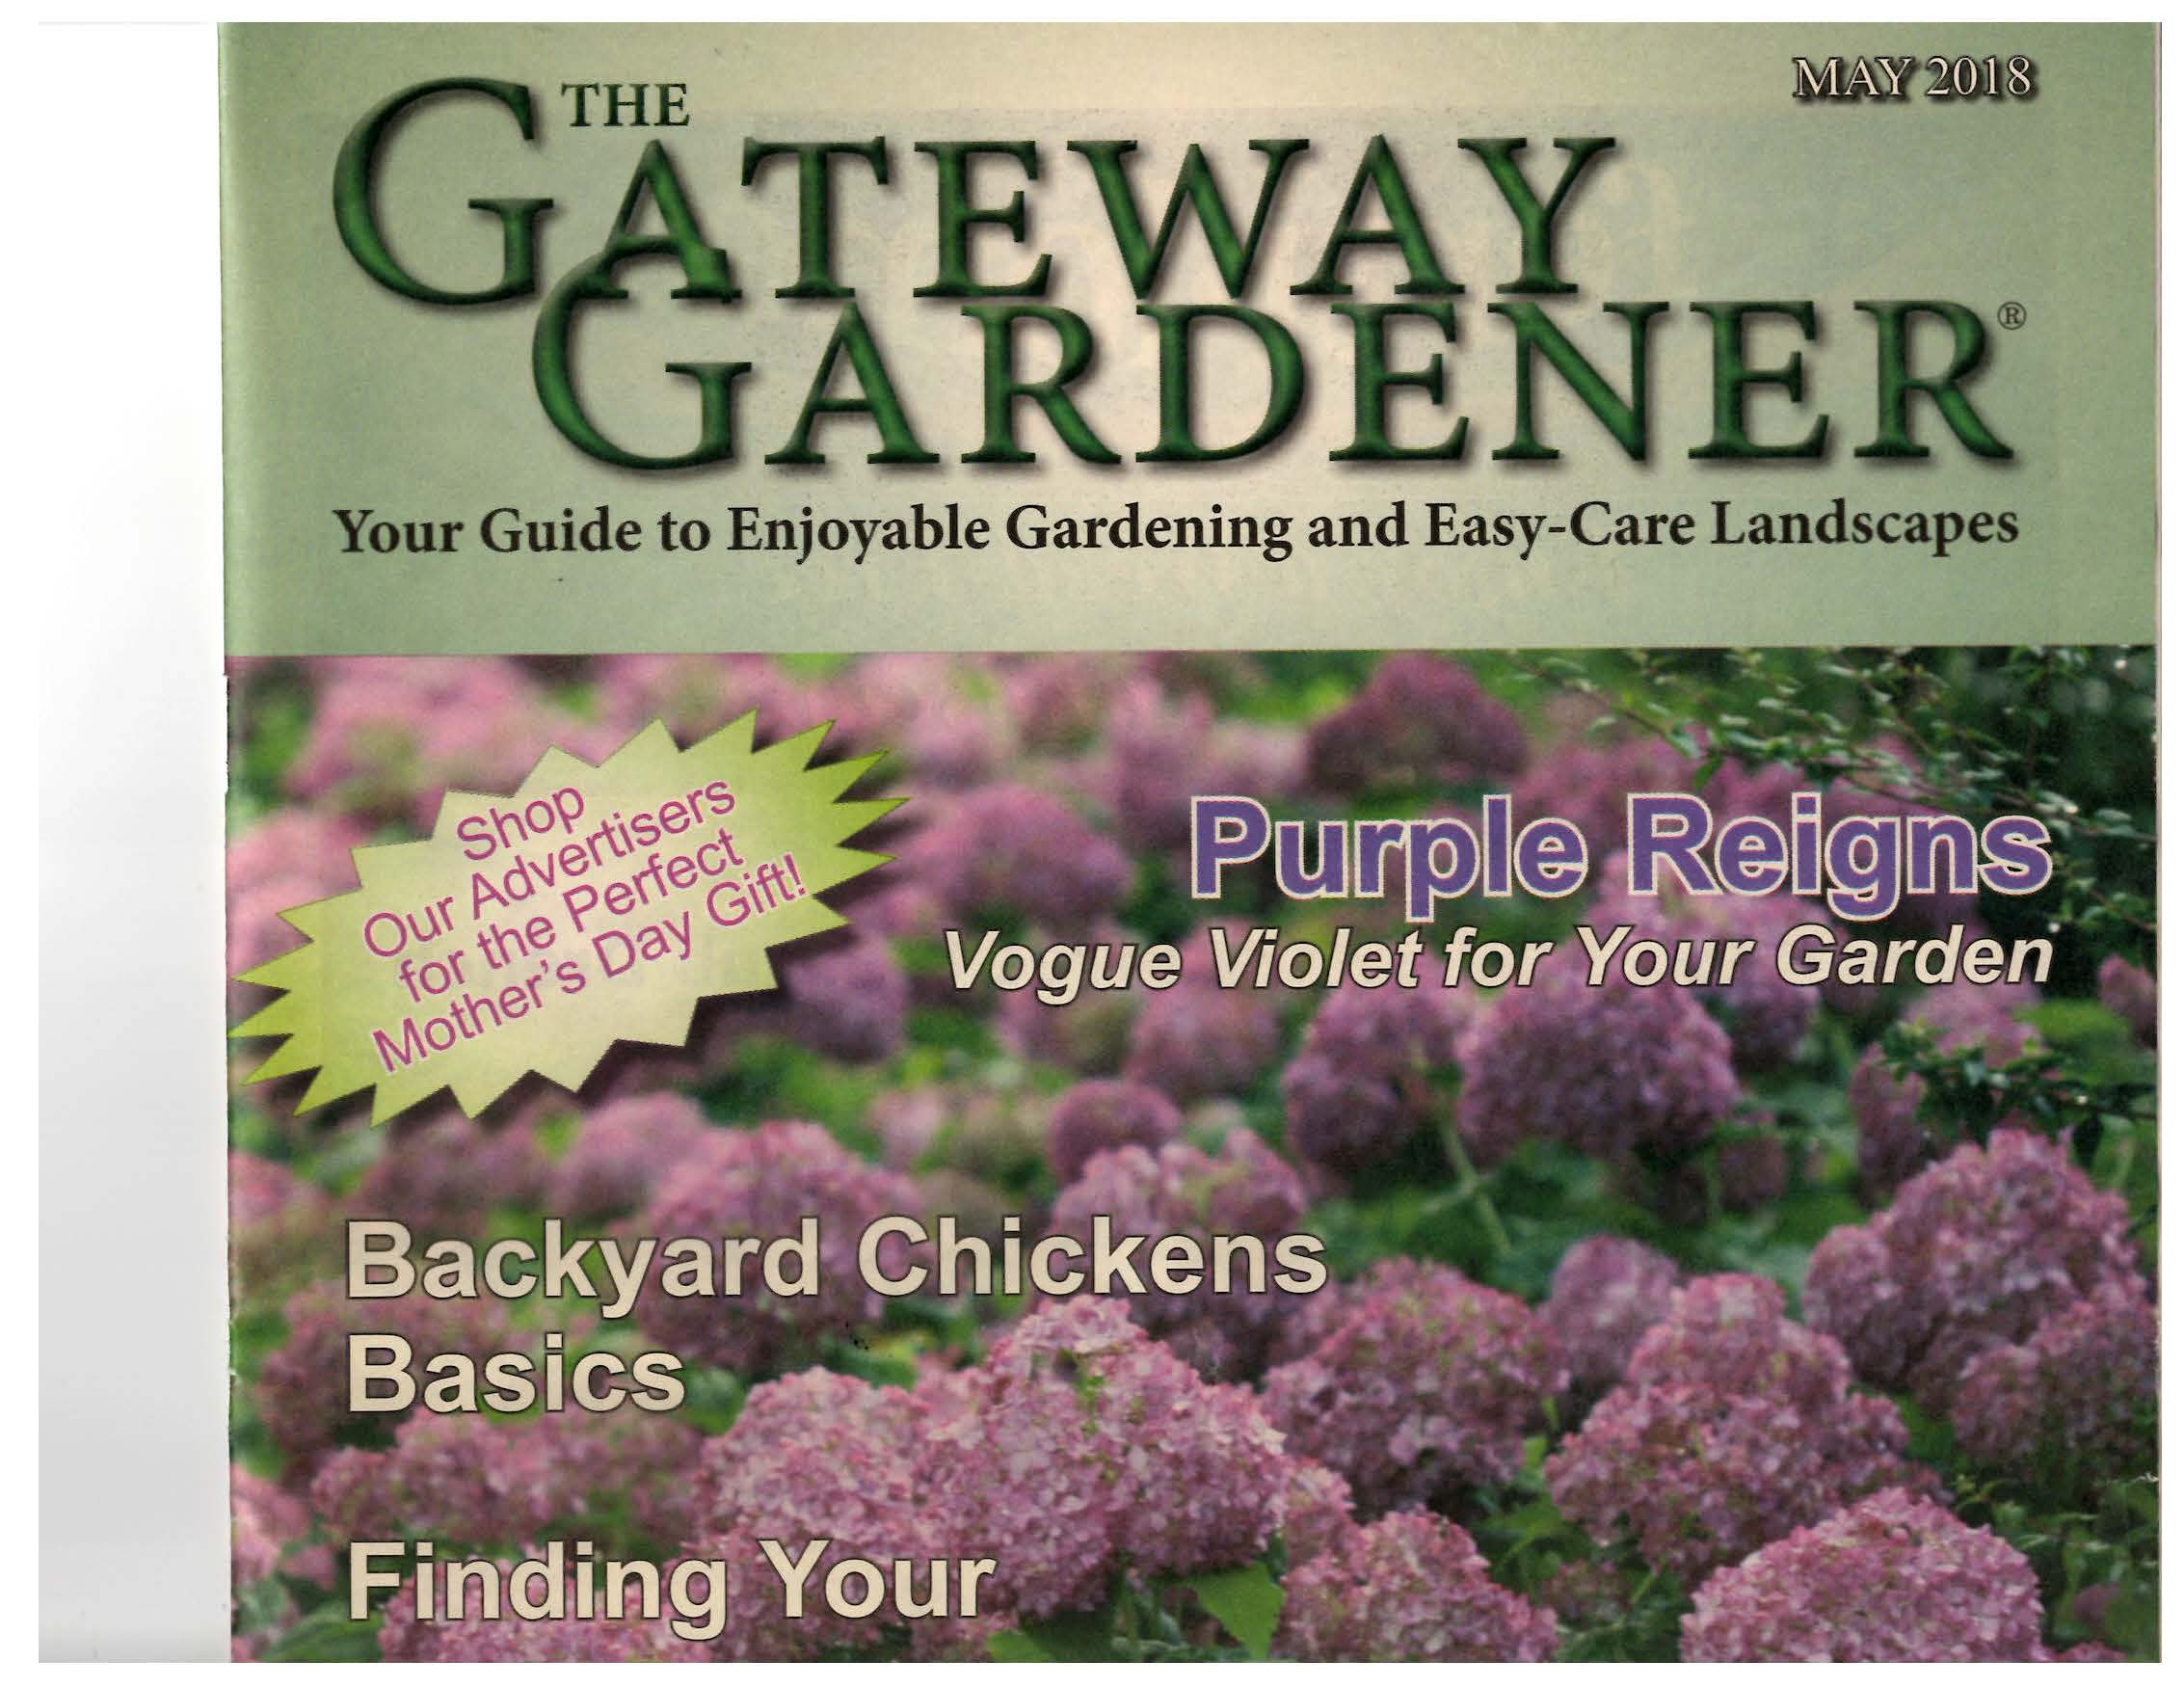 GatewayGardner_May2018_Page_1.jpg